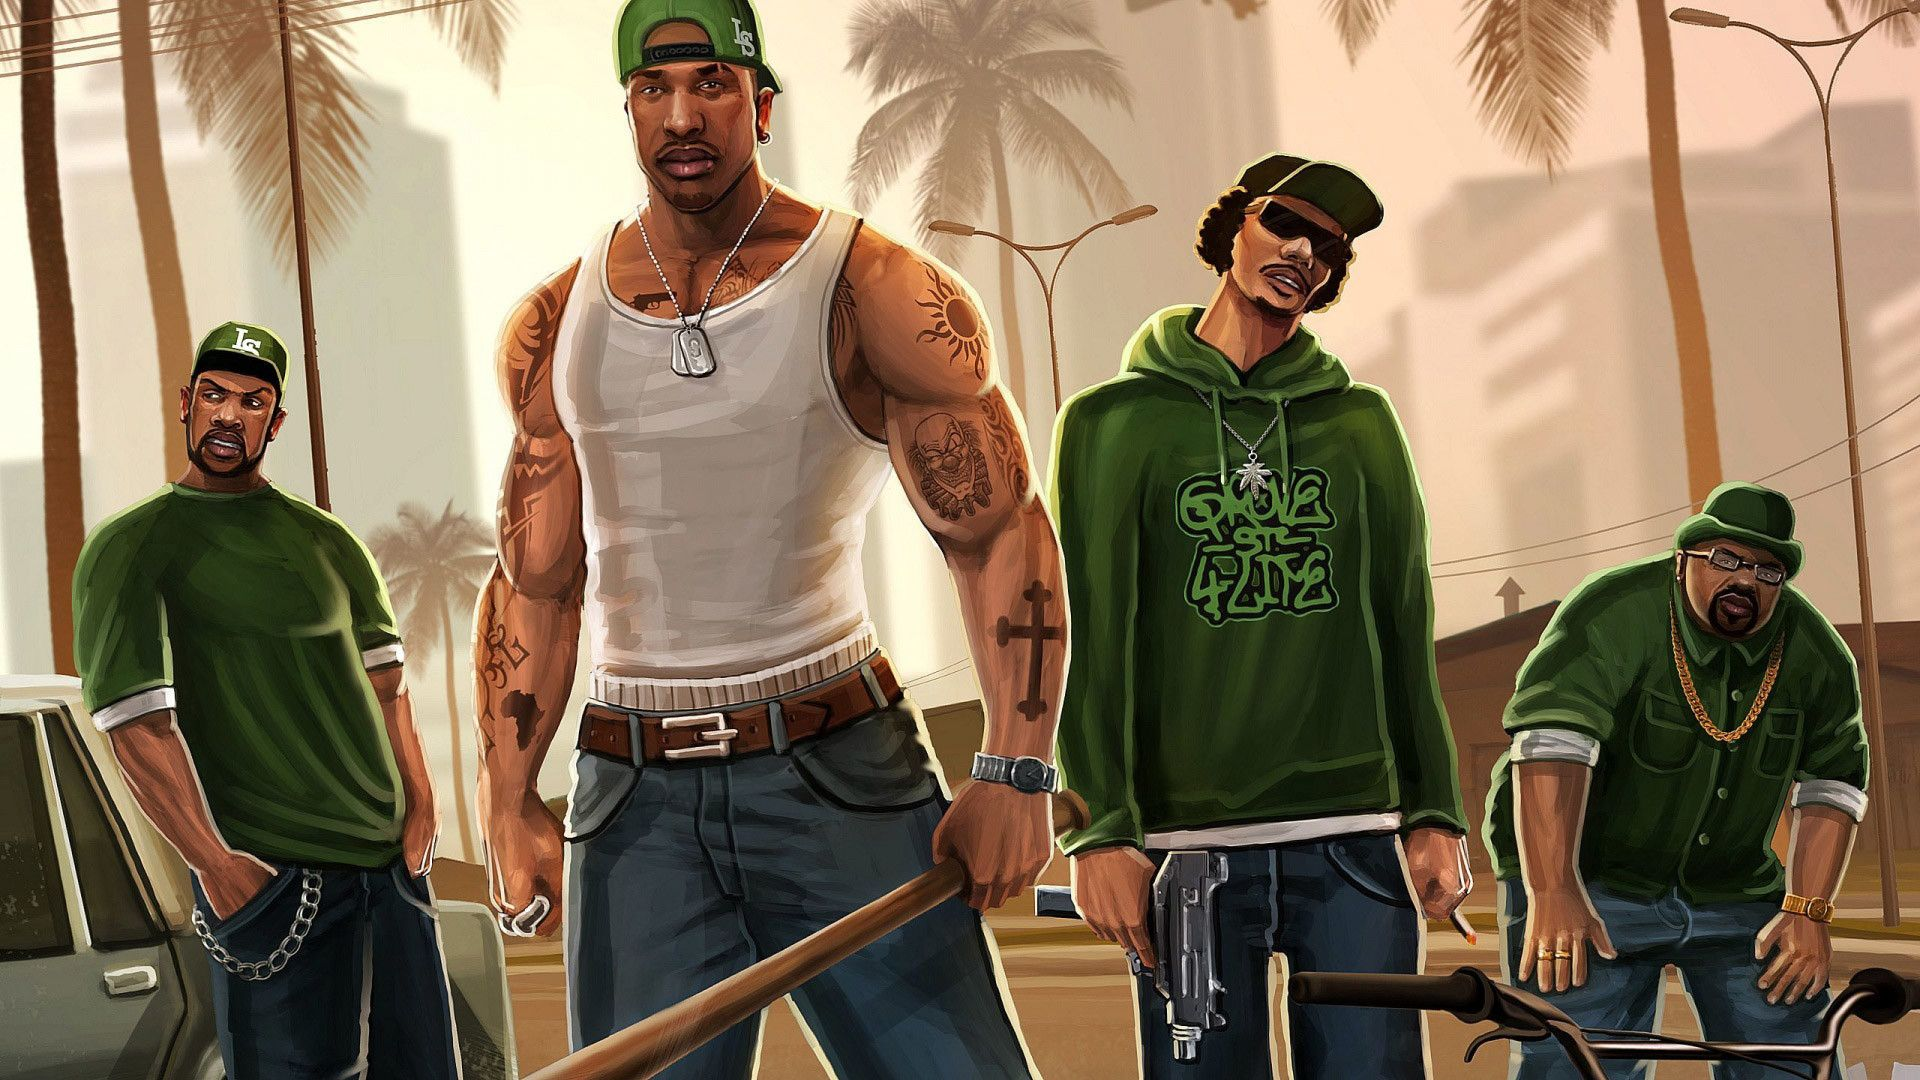 Grand Theft Auto San Andreas Wallpapers 55 Images Di 2020